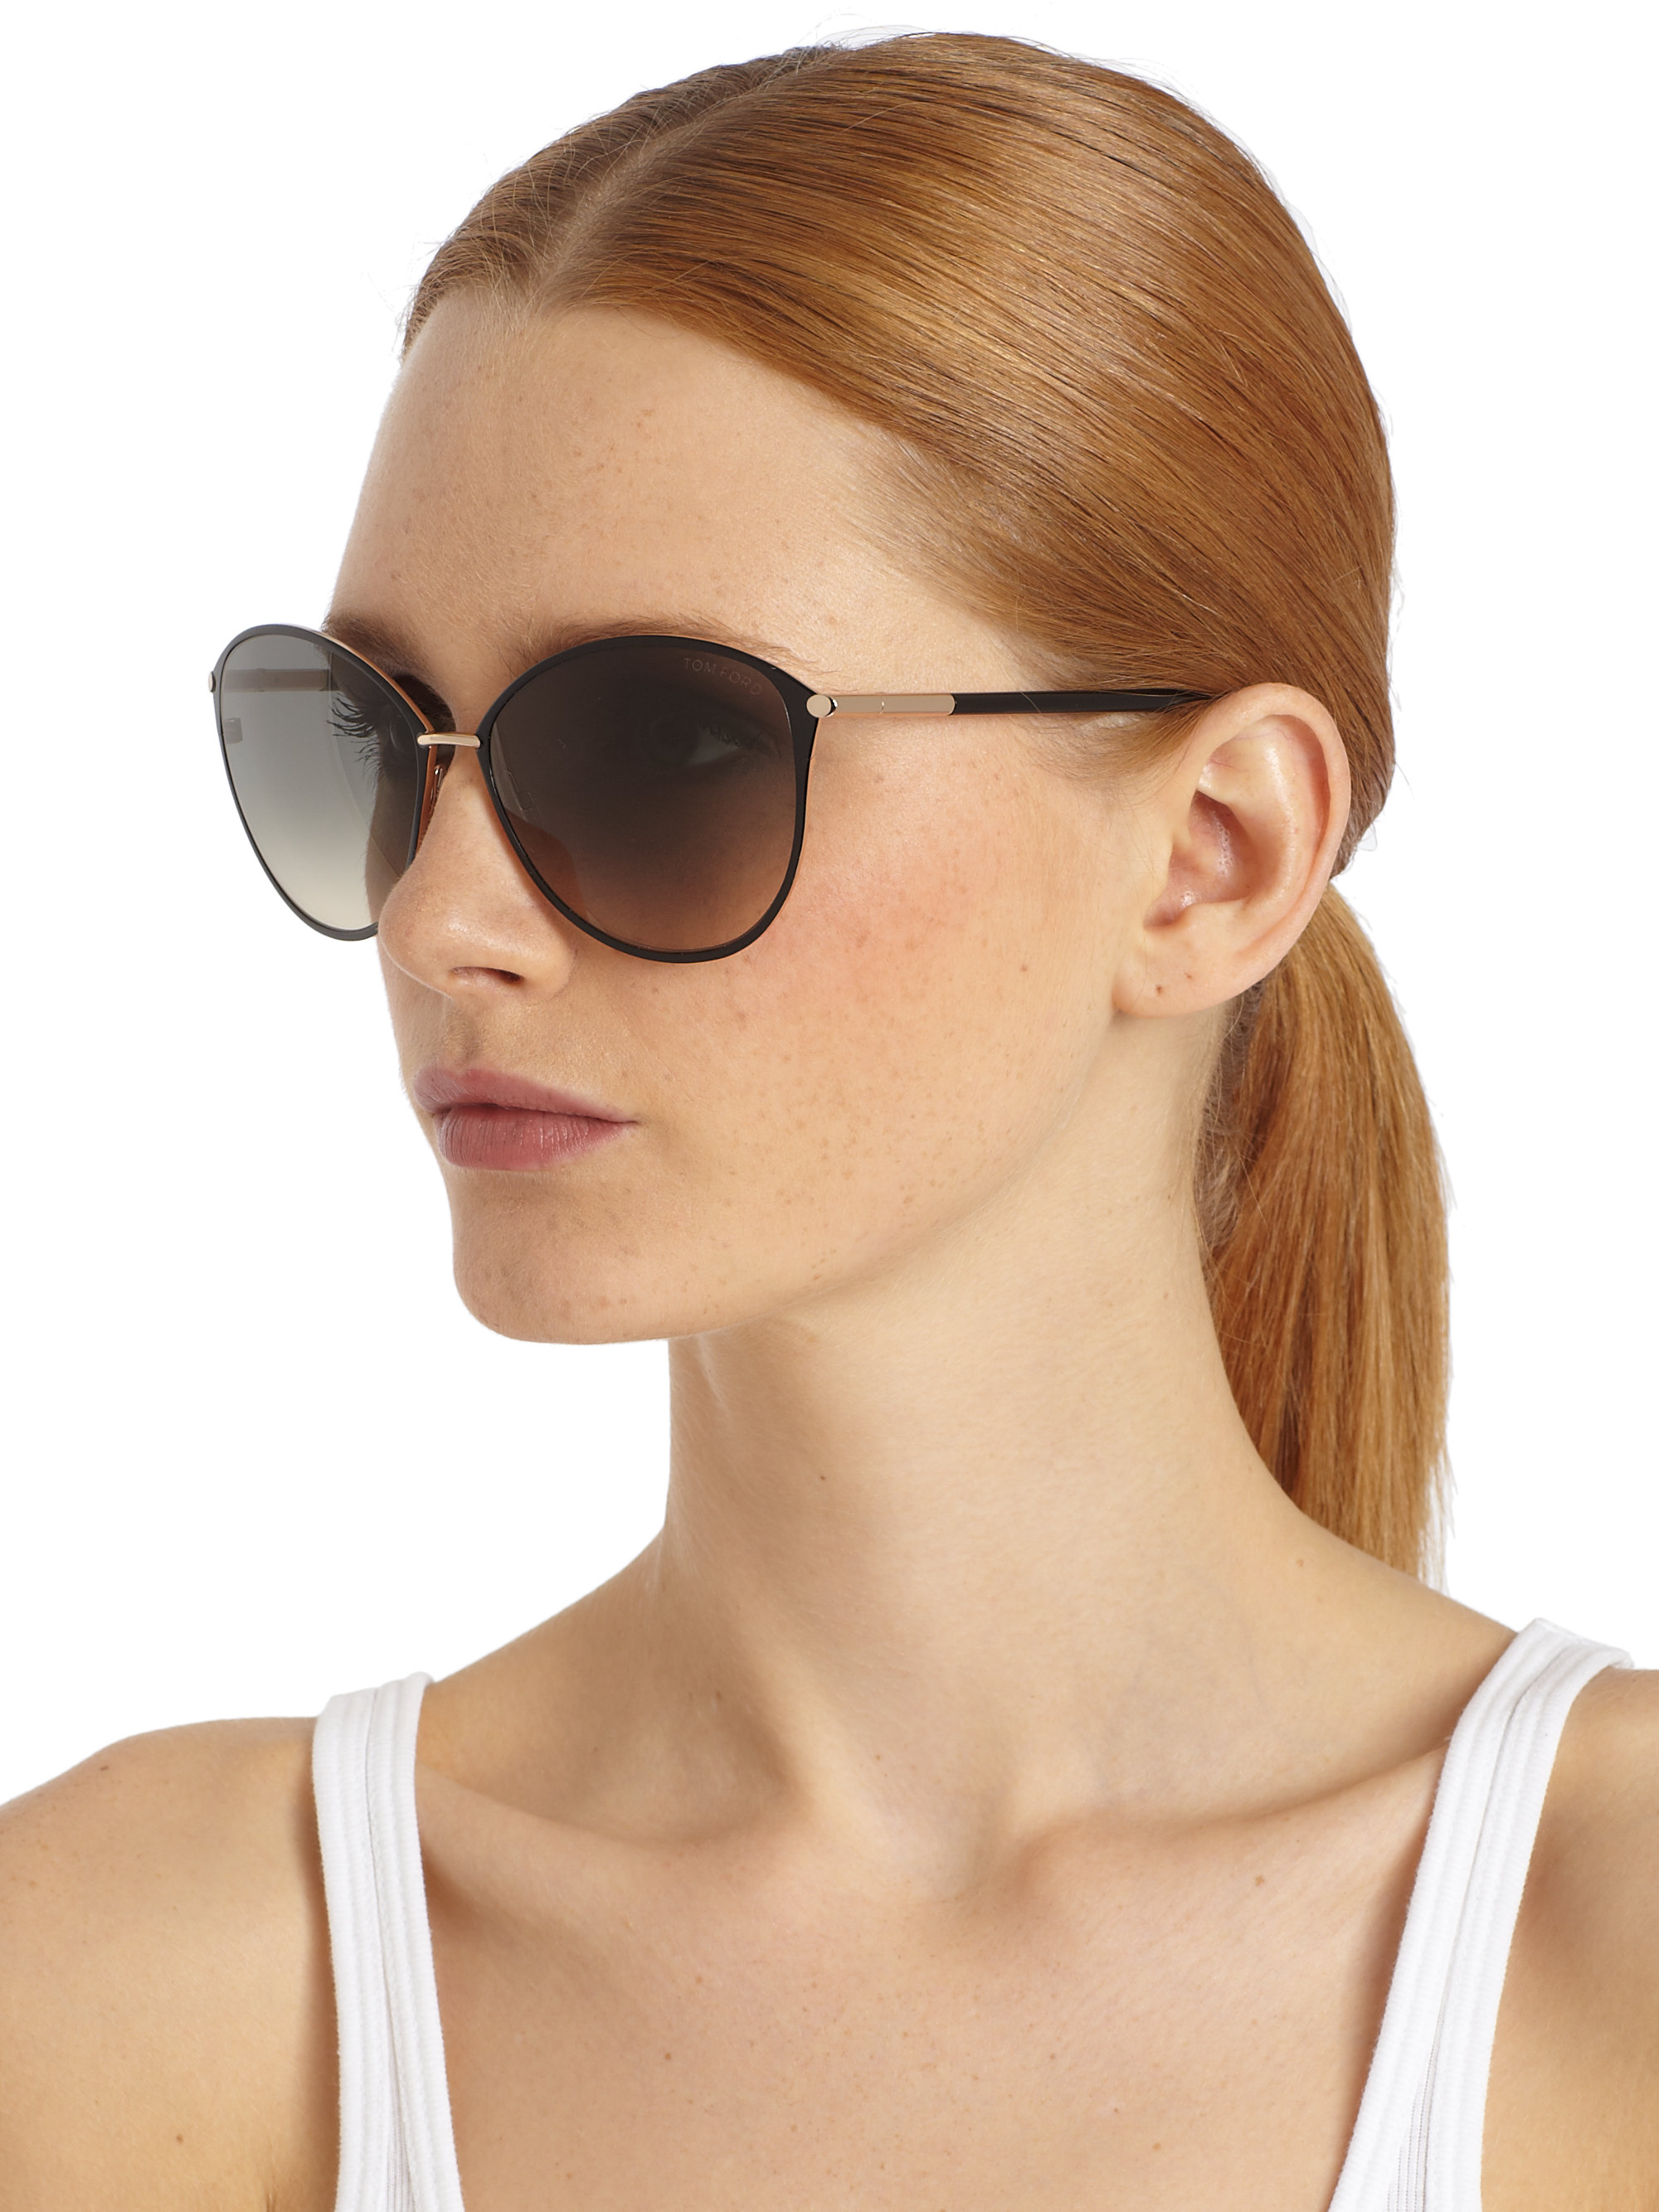 Tom Ford Oversized Sunglasses  tom ford penelope oversized sunglasses in black lyst